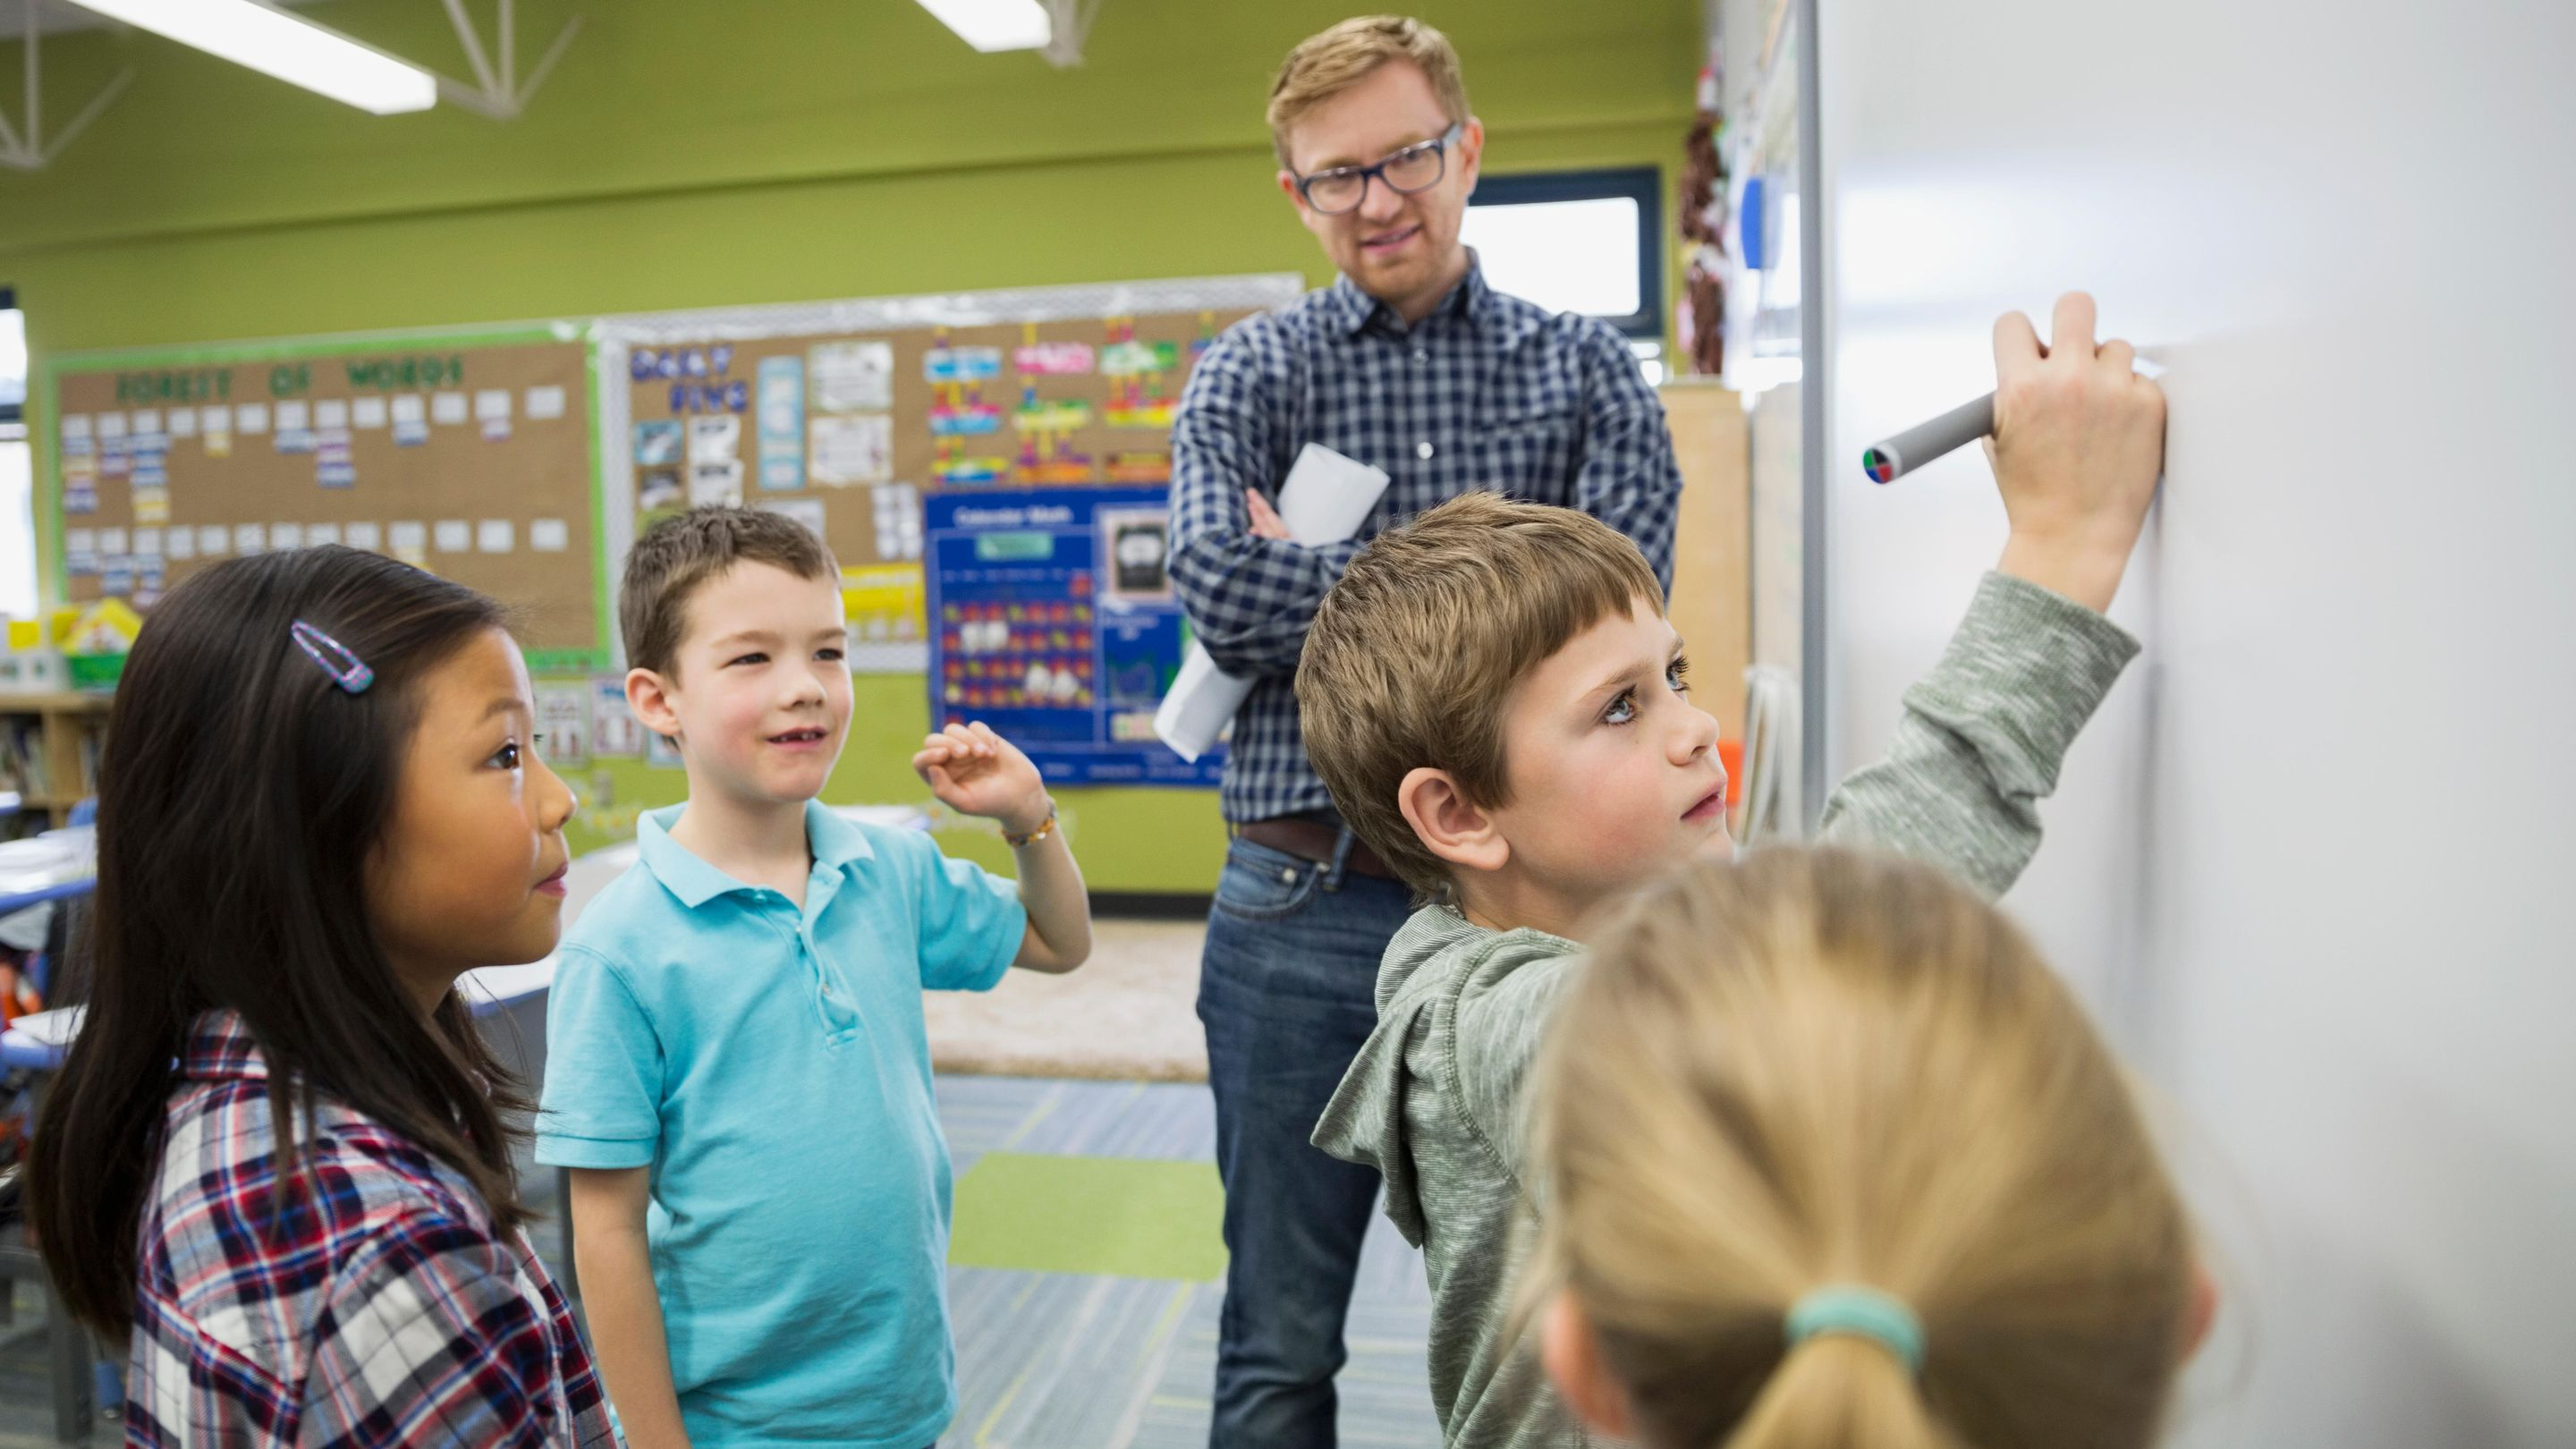 3 Ways to Ask Questions That Engage the Whole Class